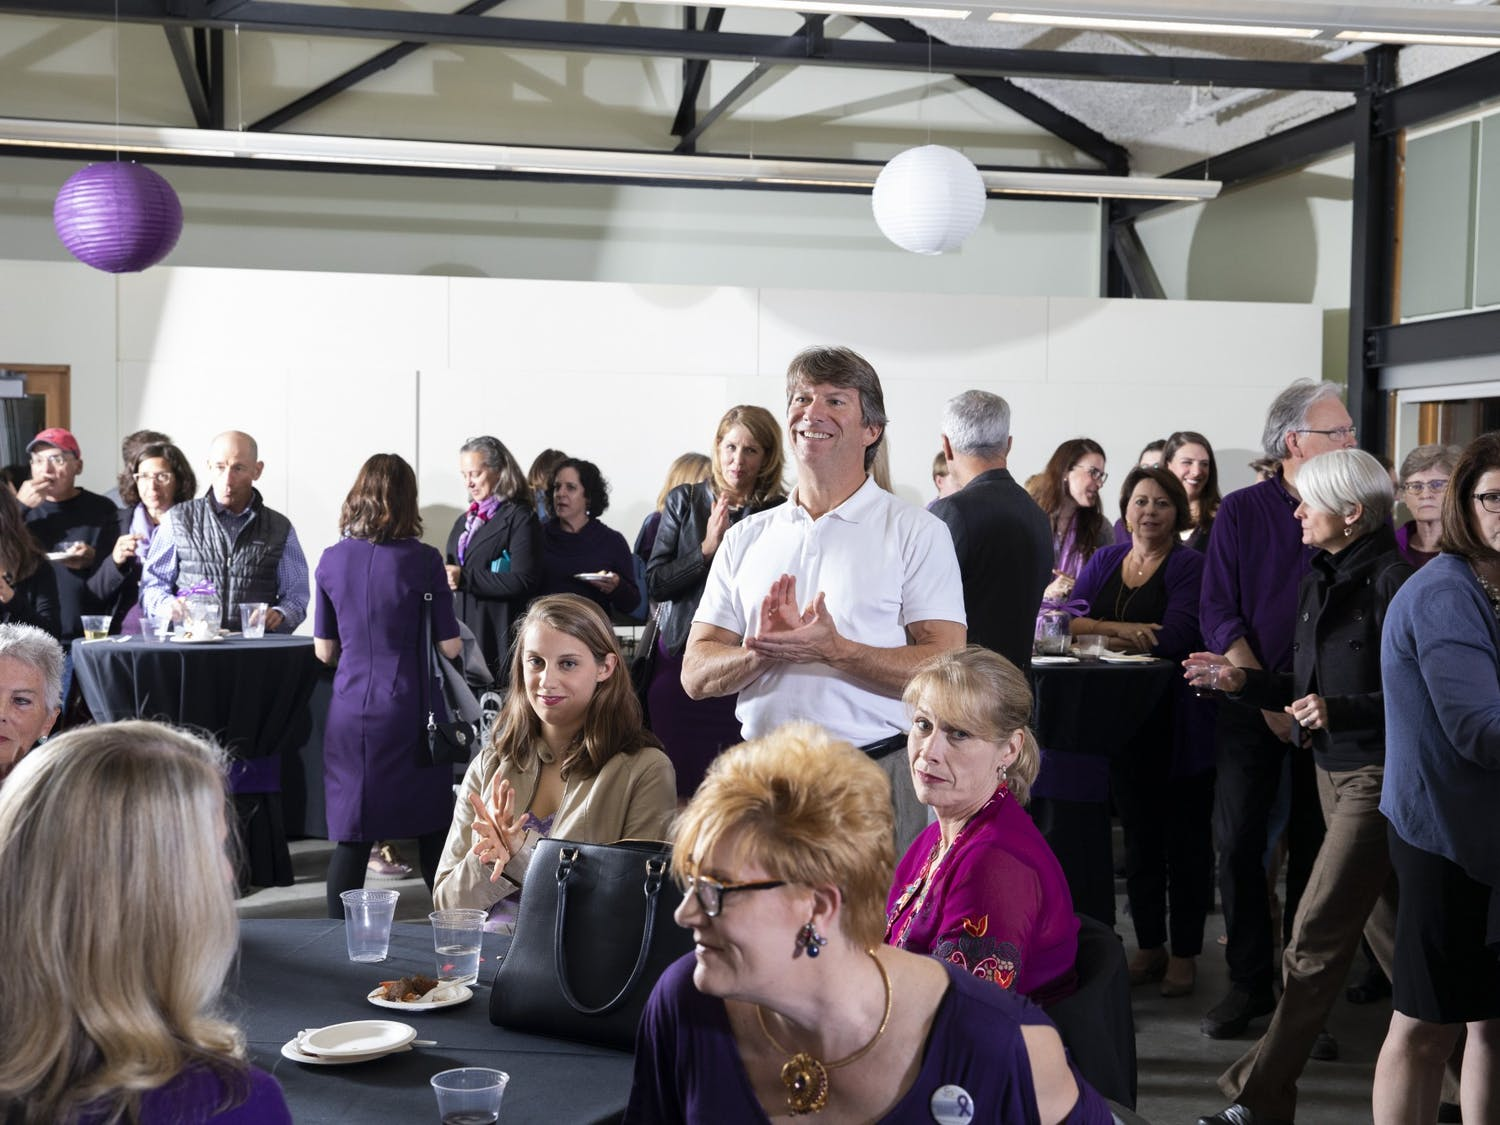 In fall 2019 the Compass Center held a fundraiser to rent apartments in Orange County to use as emergency housing for survivors of domestic violence and their children. Attendees wore purple in support of domestic violence awareness. Photo courtesy of Alex Lassiter/Copper Key Photo.